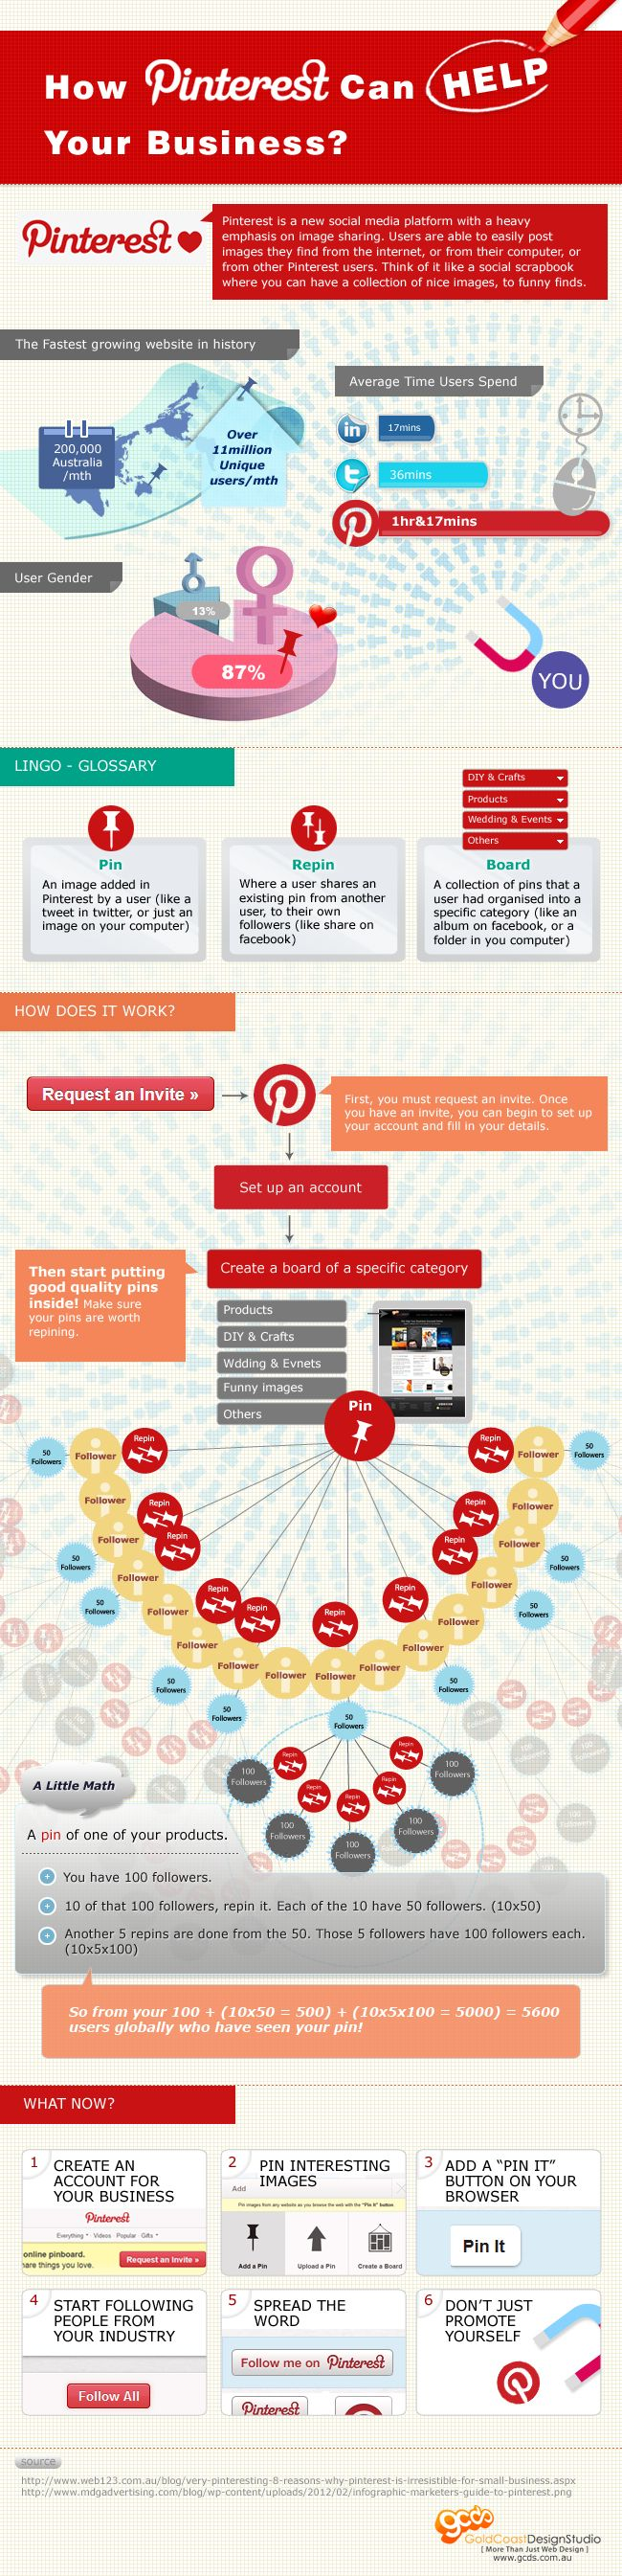 How Pinterest Can Help Your Business #Infographic #Pinterest